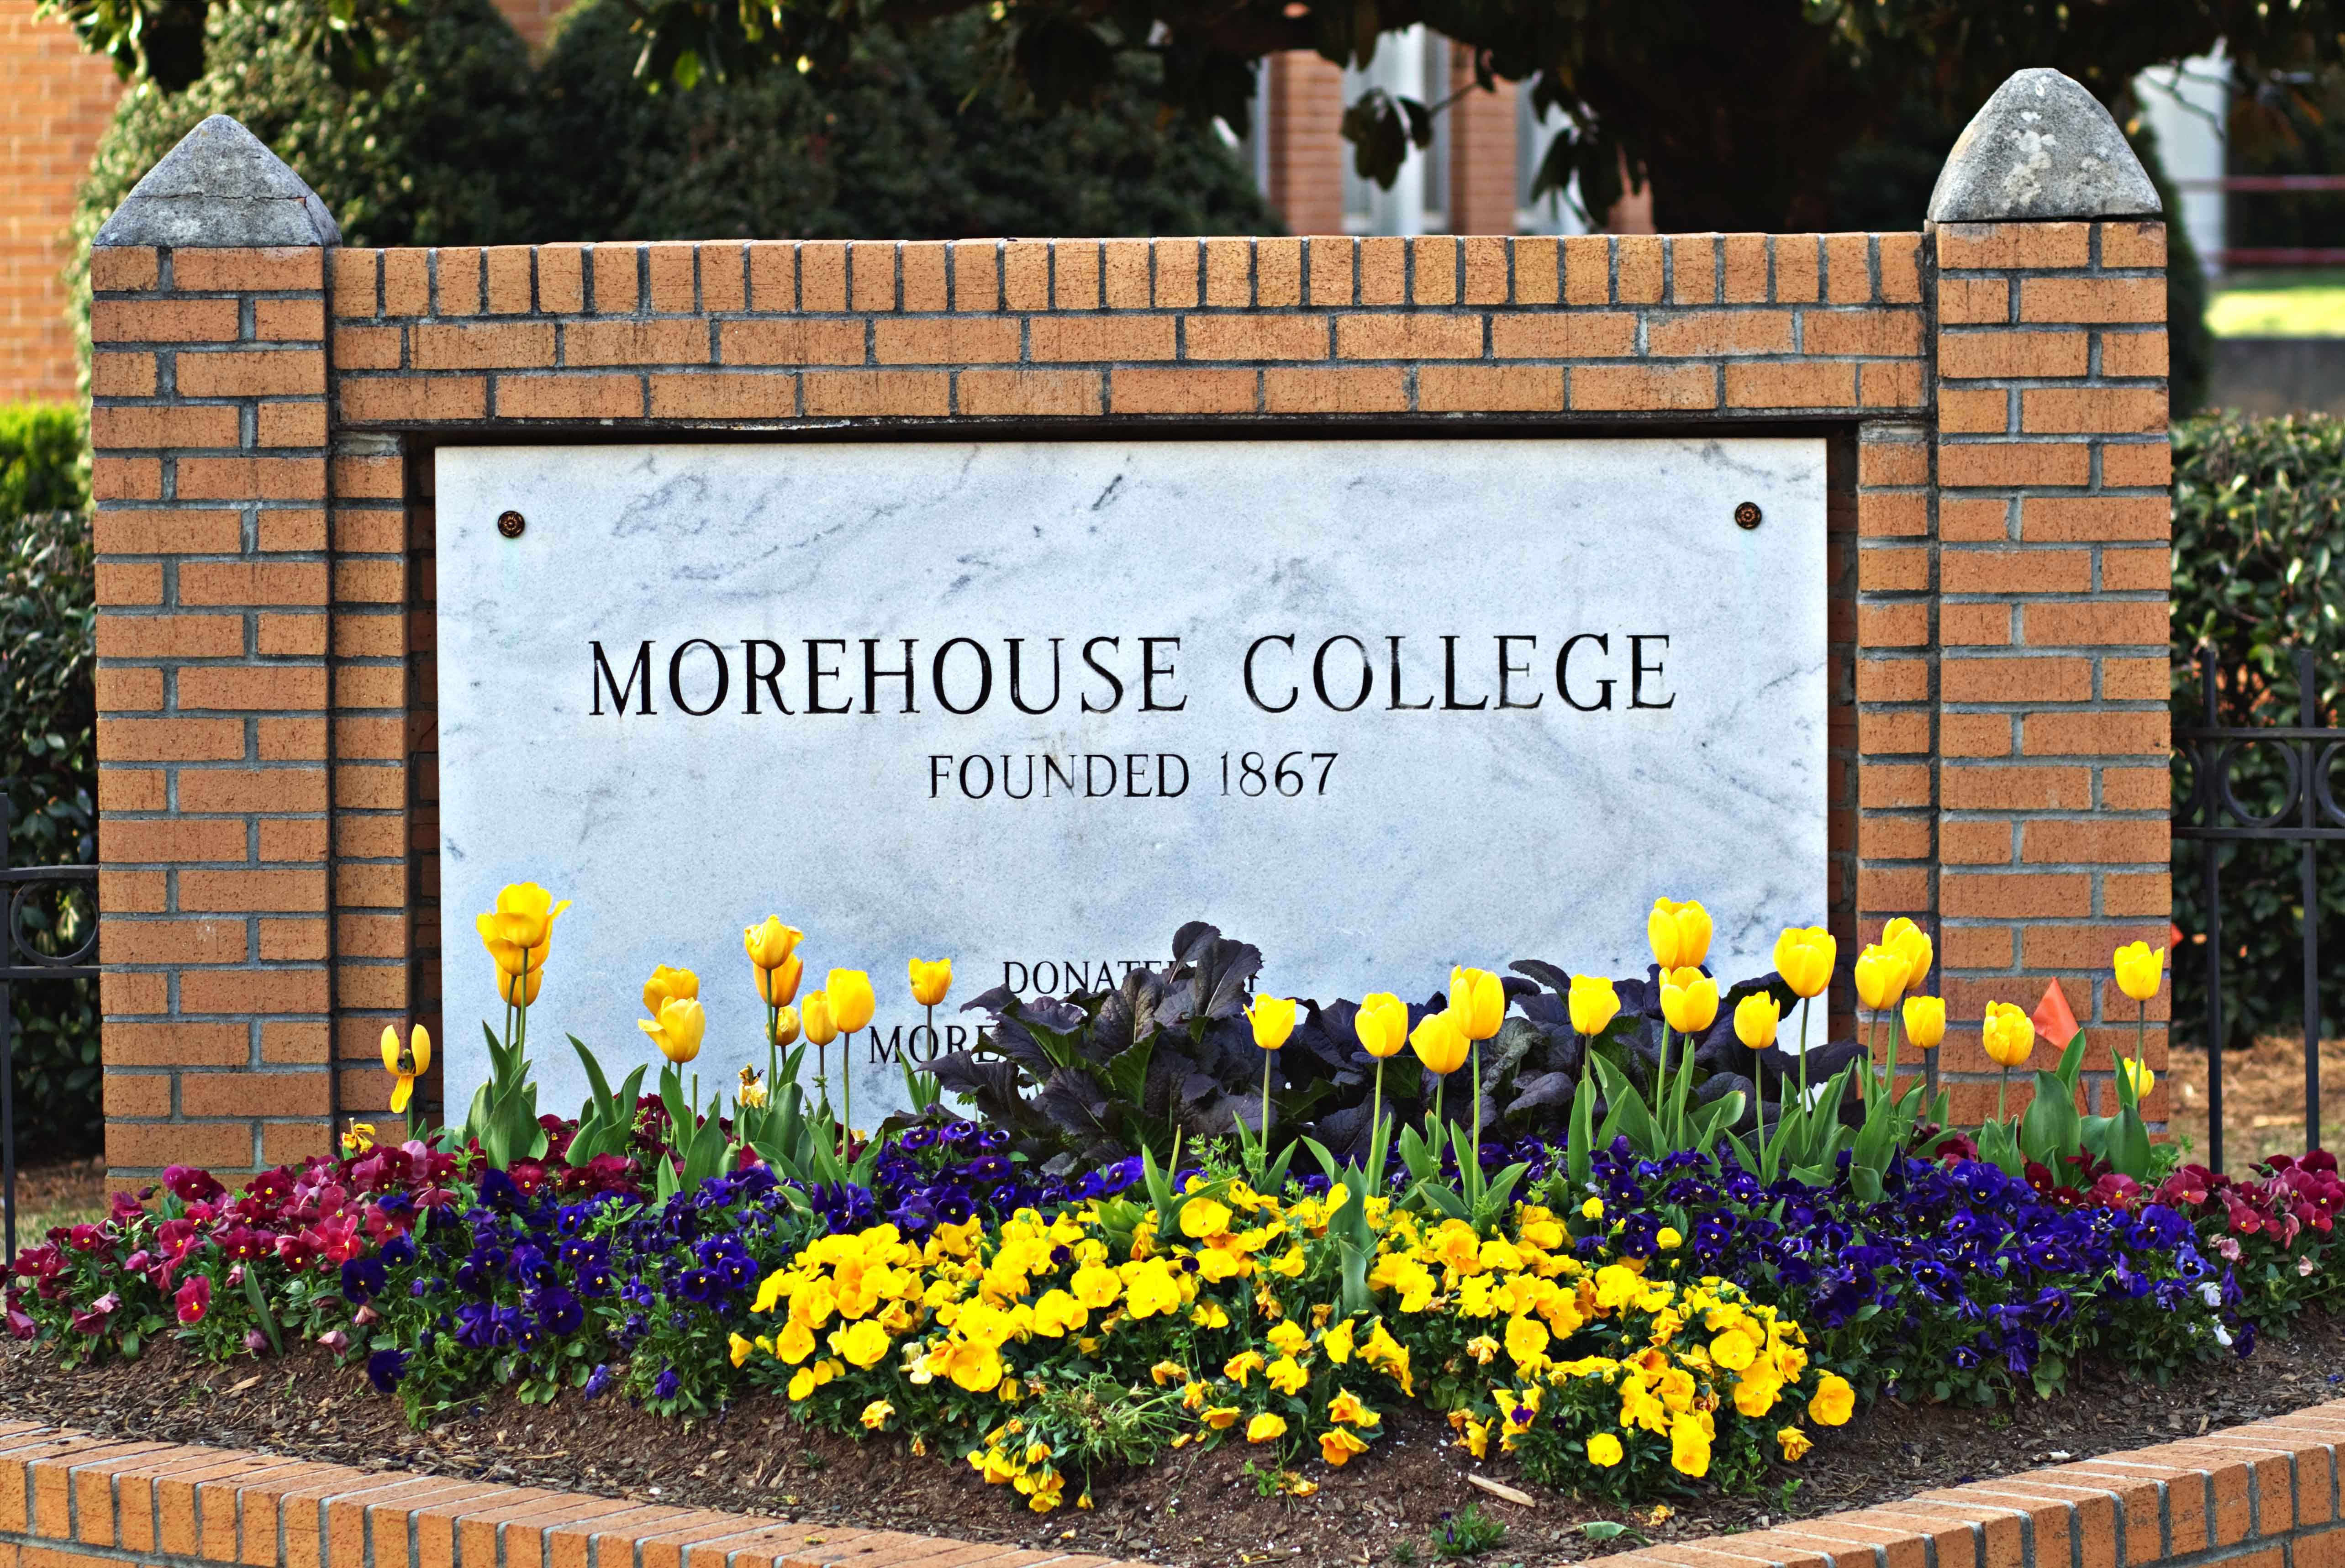 Morehouse Receives $5 Million Gift to Revamp MLK Chapel - The Woodruff Foundation awarded Morehouse College a $5 million gift to restore the Martin Luther King Jr. International Chapel. Morehouse president John Wilson said the gift was ?poetic? as he was part of the first class in 1979 to graduate in the King Chapel. The $5 million is more than half of the $7 million needed to repair the chapel.(Photo: Courtesy of Morehouse College)